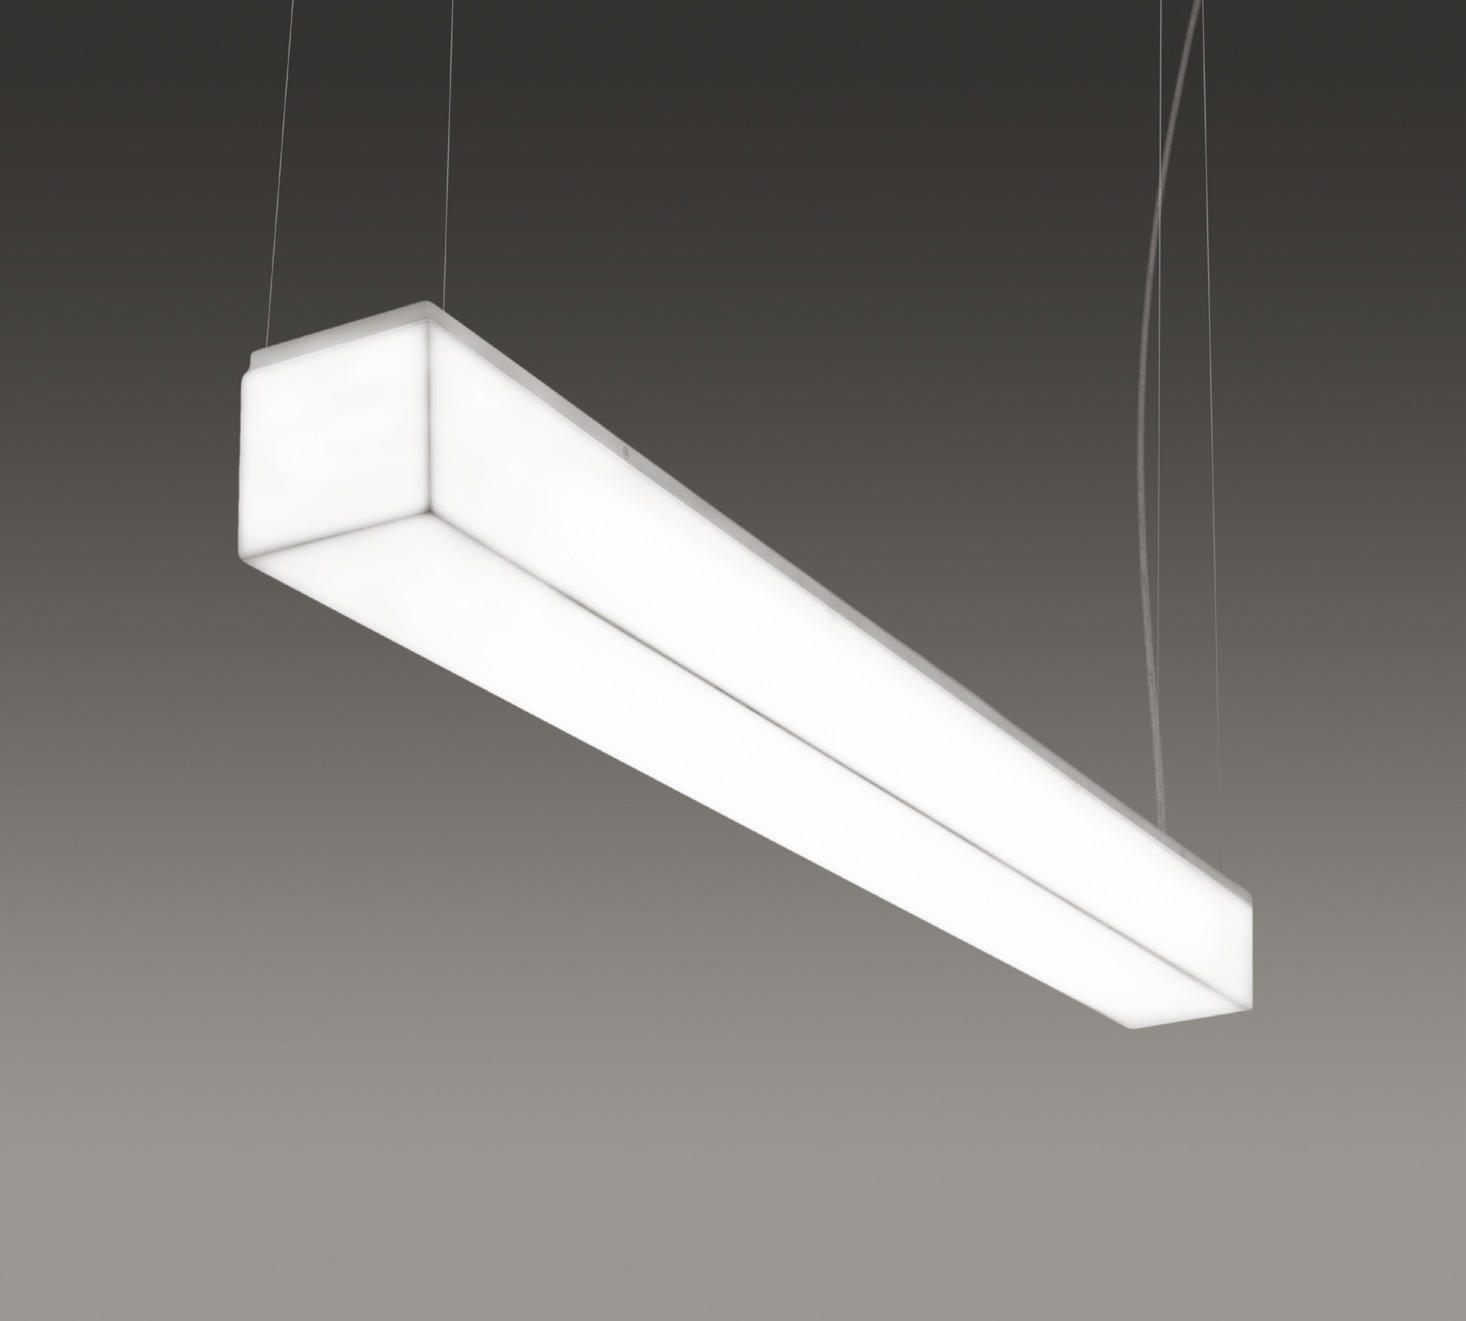 Kubo Pendant 4 6 Linear Suspended Lights From 3g